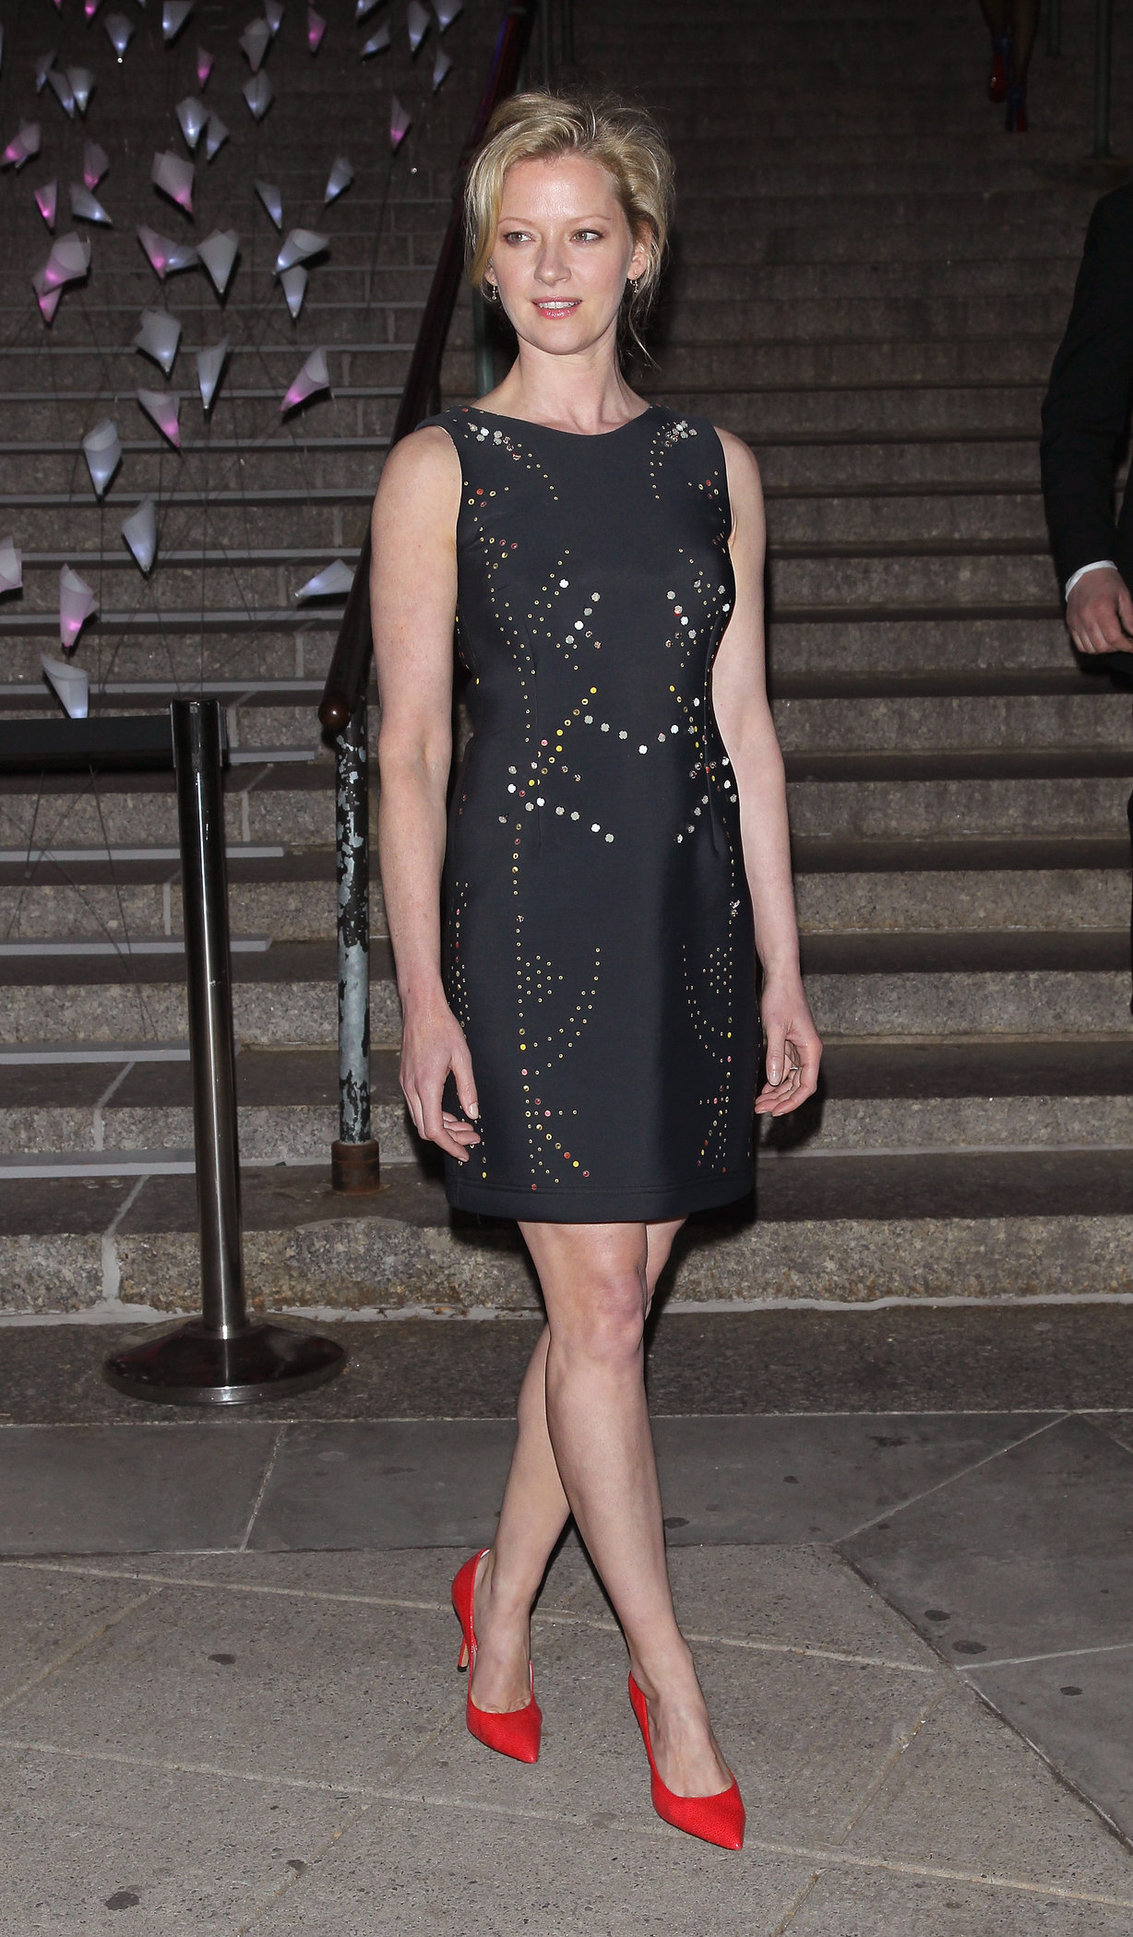 Gretchen Mol Vanity Fair Party at Tribeca Film Festival in New York, April 16, 2013